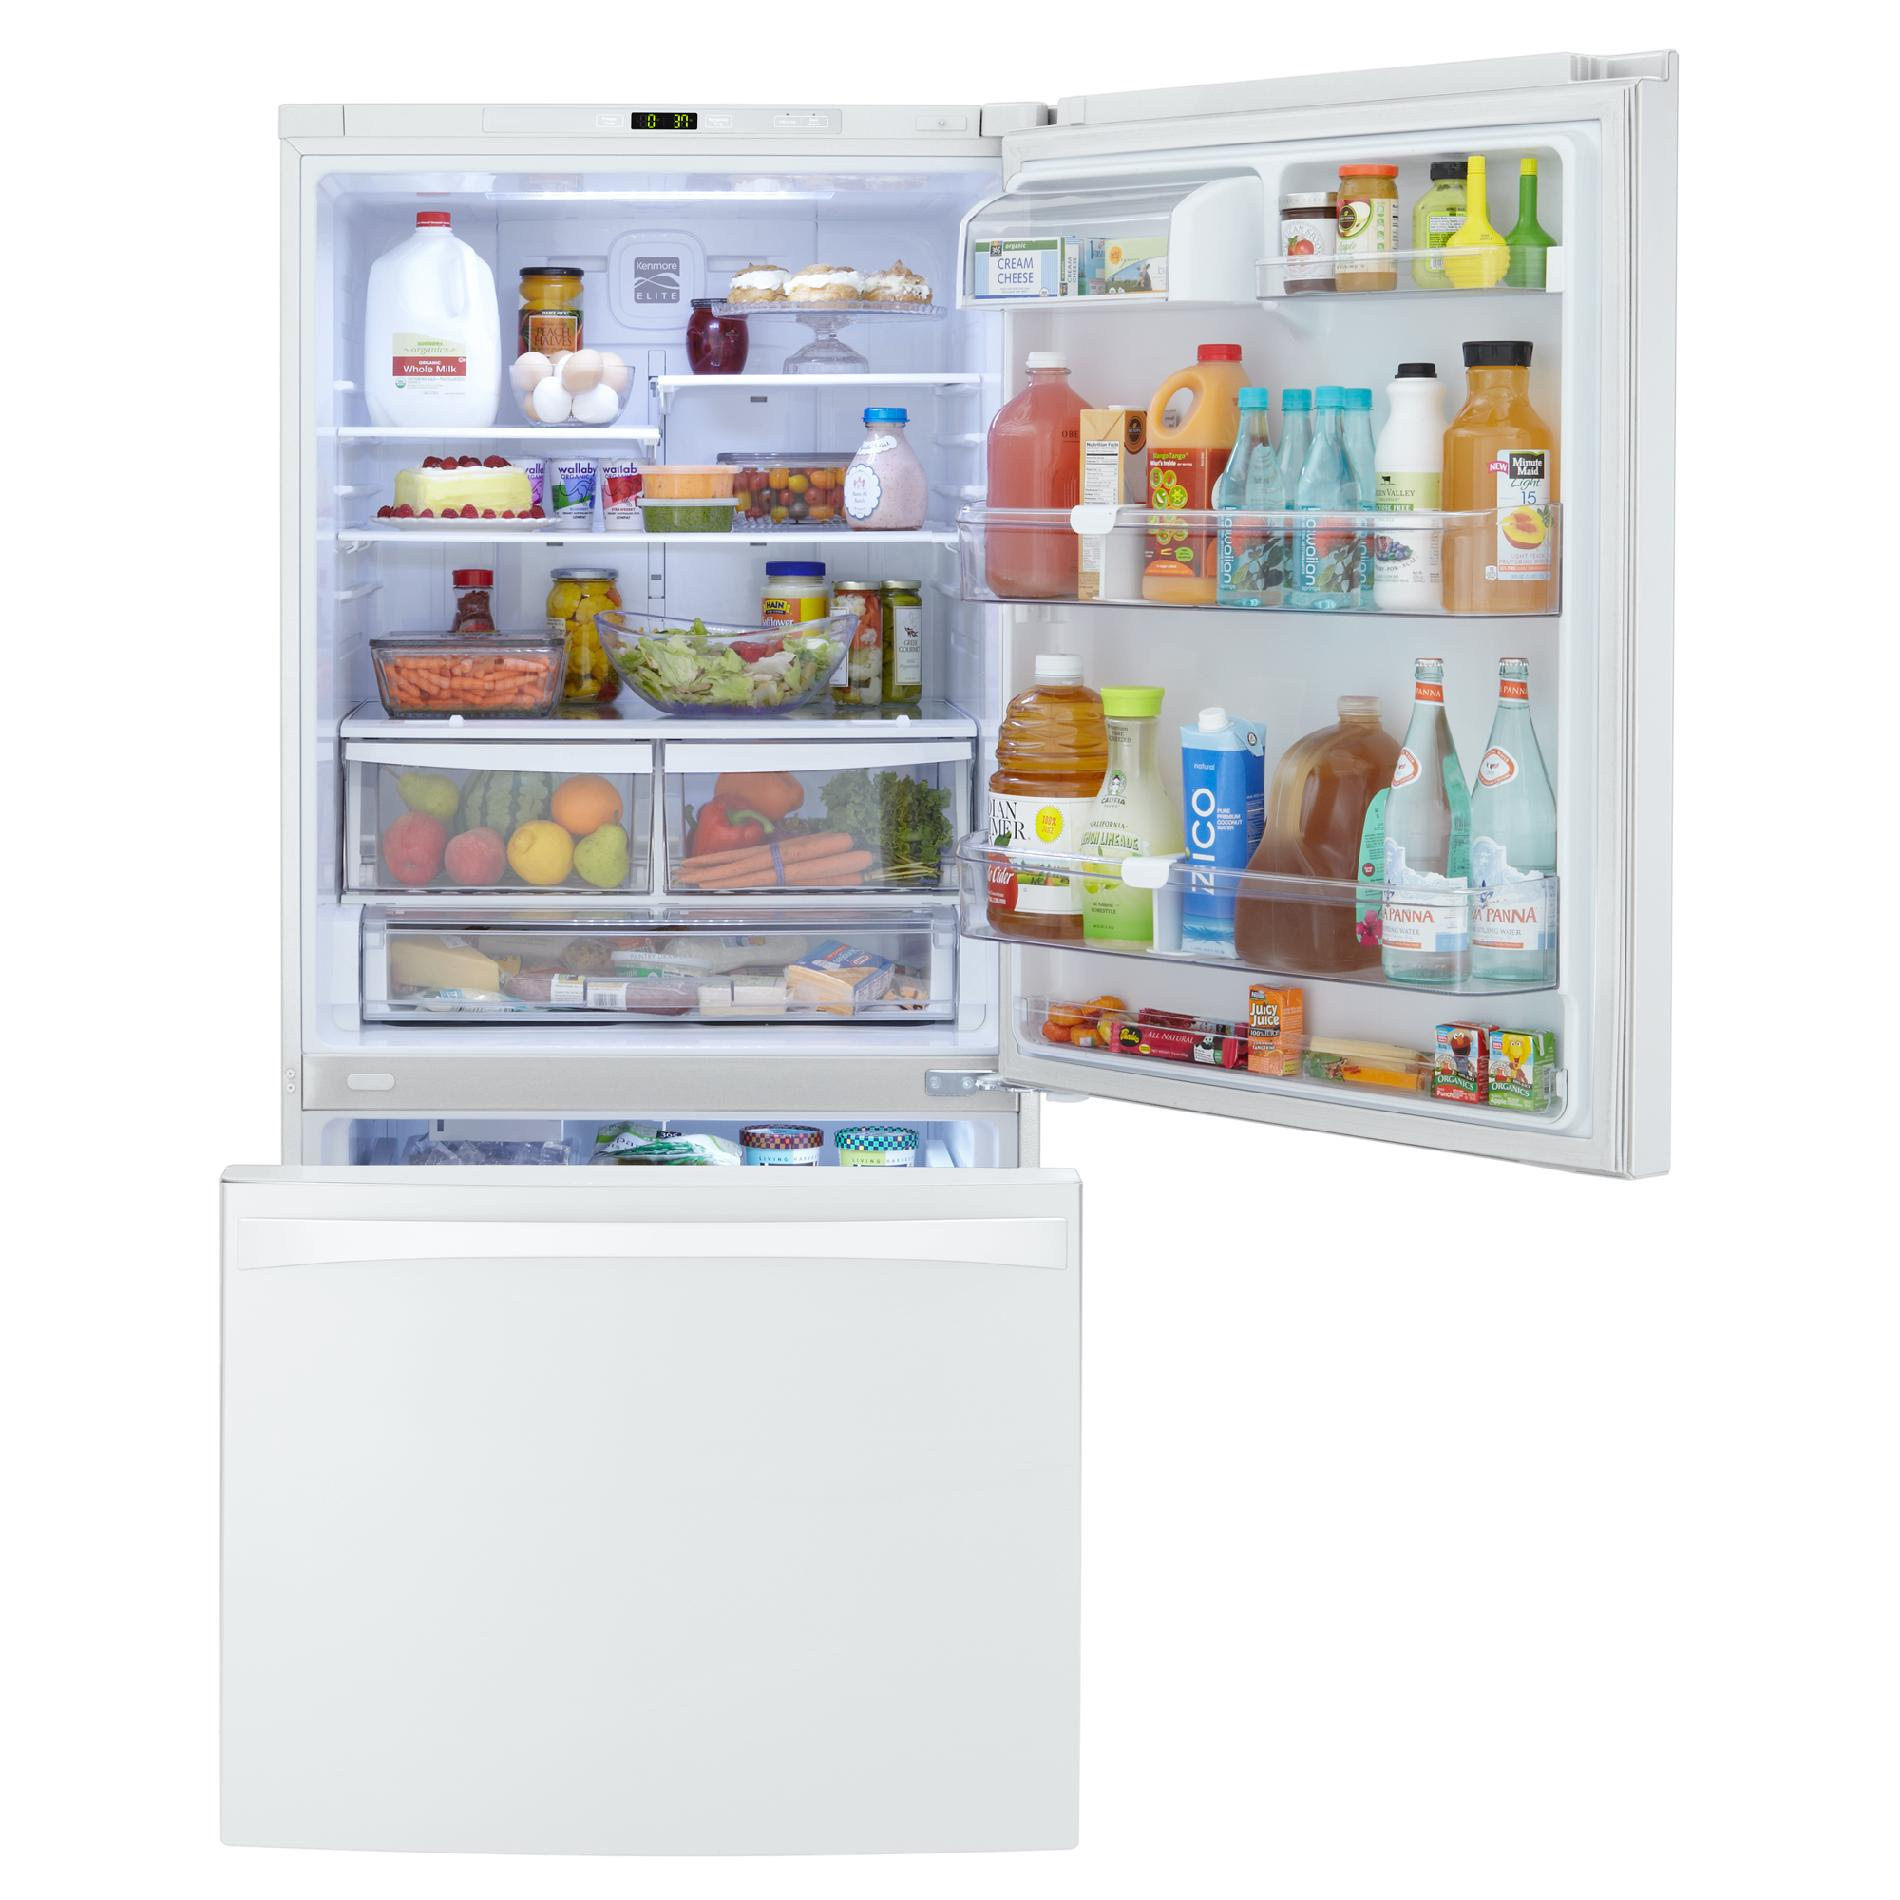 Kenmore Elite 24 cu. ft. Bottom-Freezer Refrigerator – White